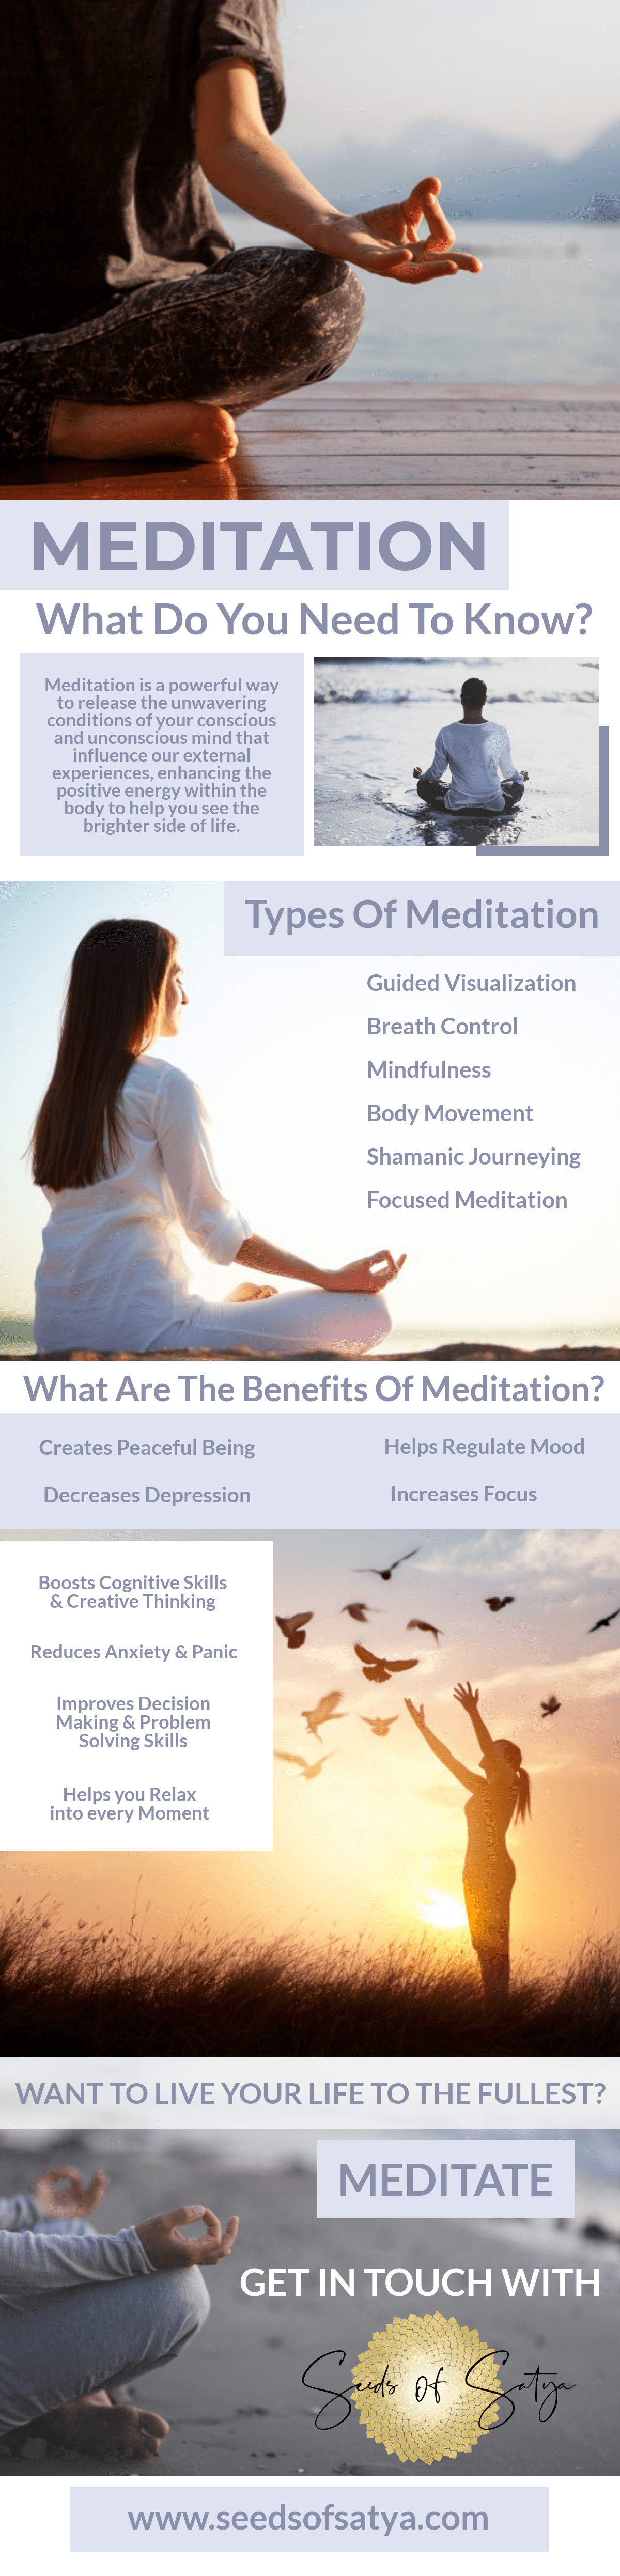 Meditation What do you need to know.png